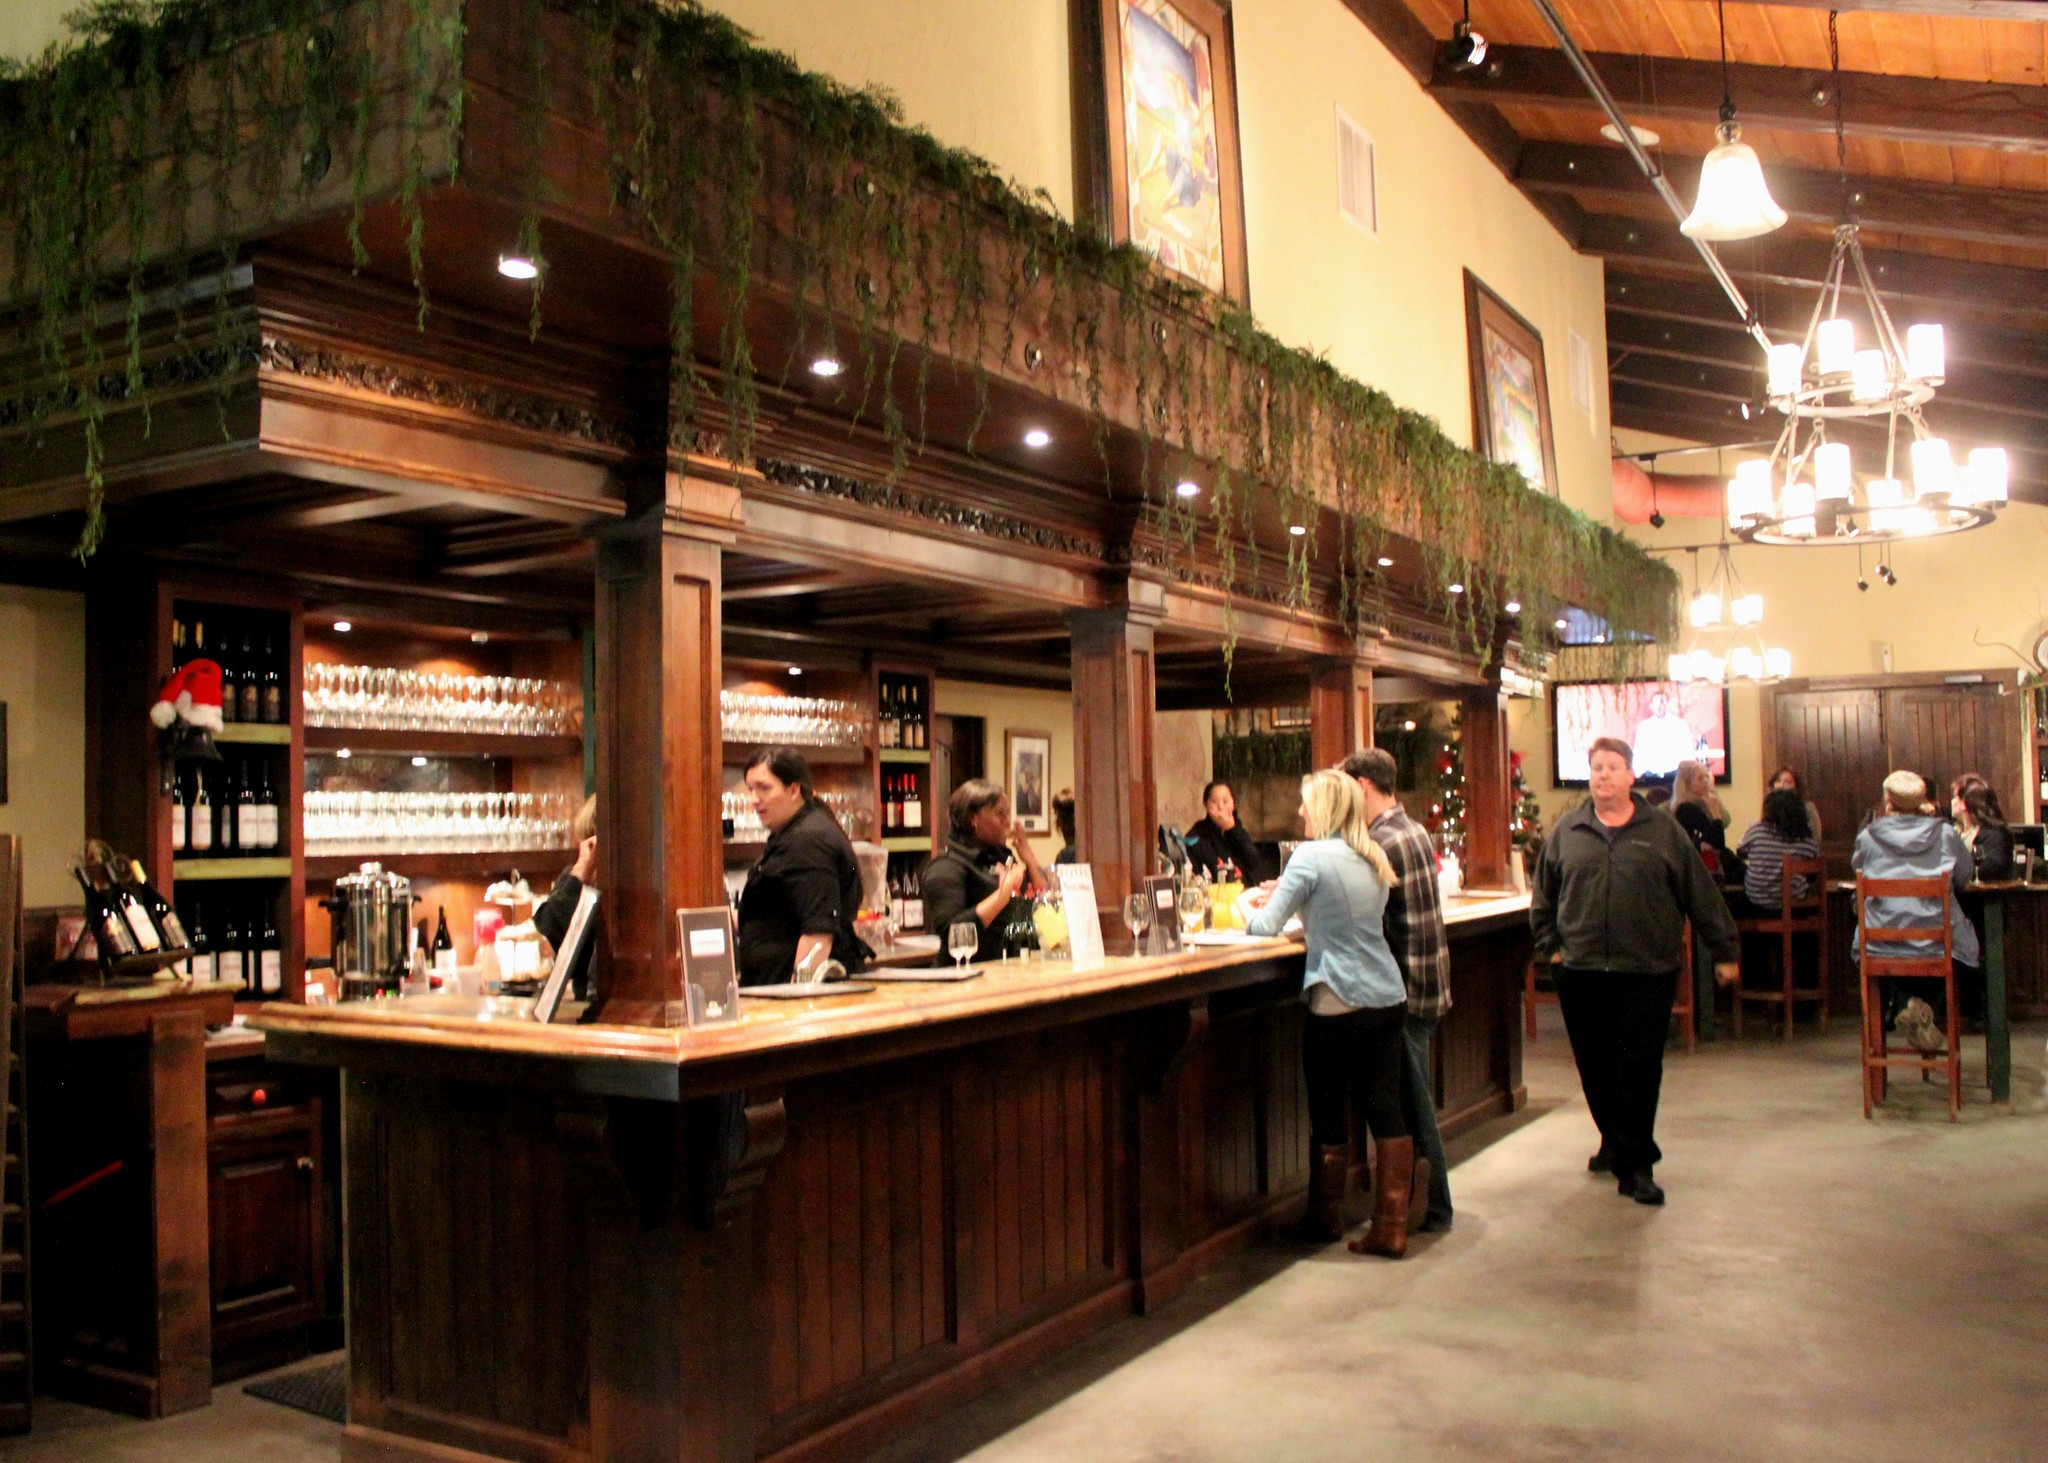 Things To Do In Temecula-Wine Tasting